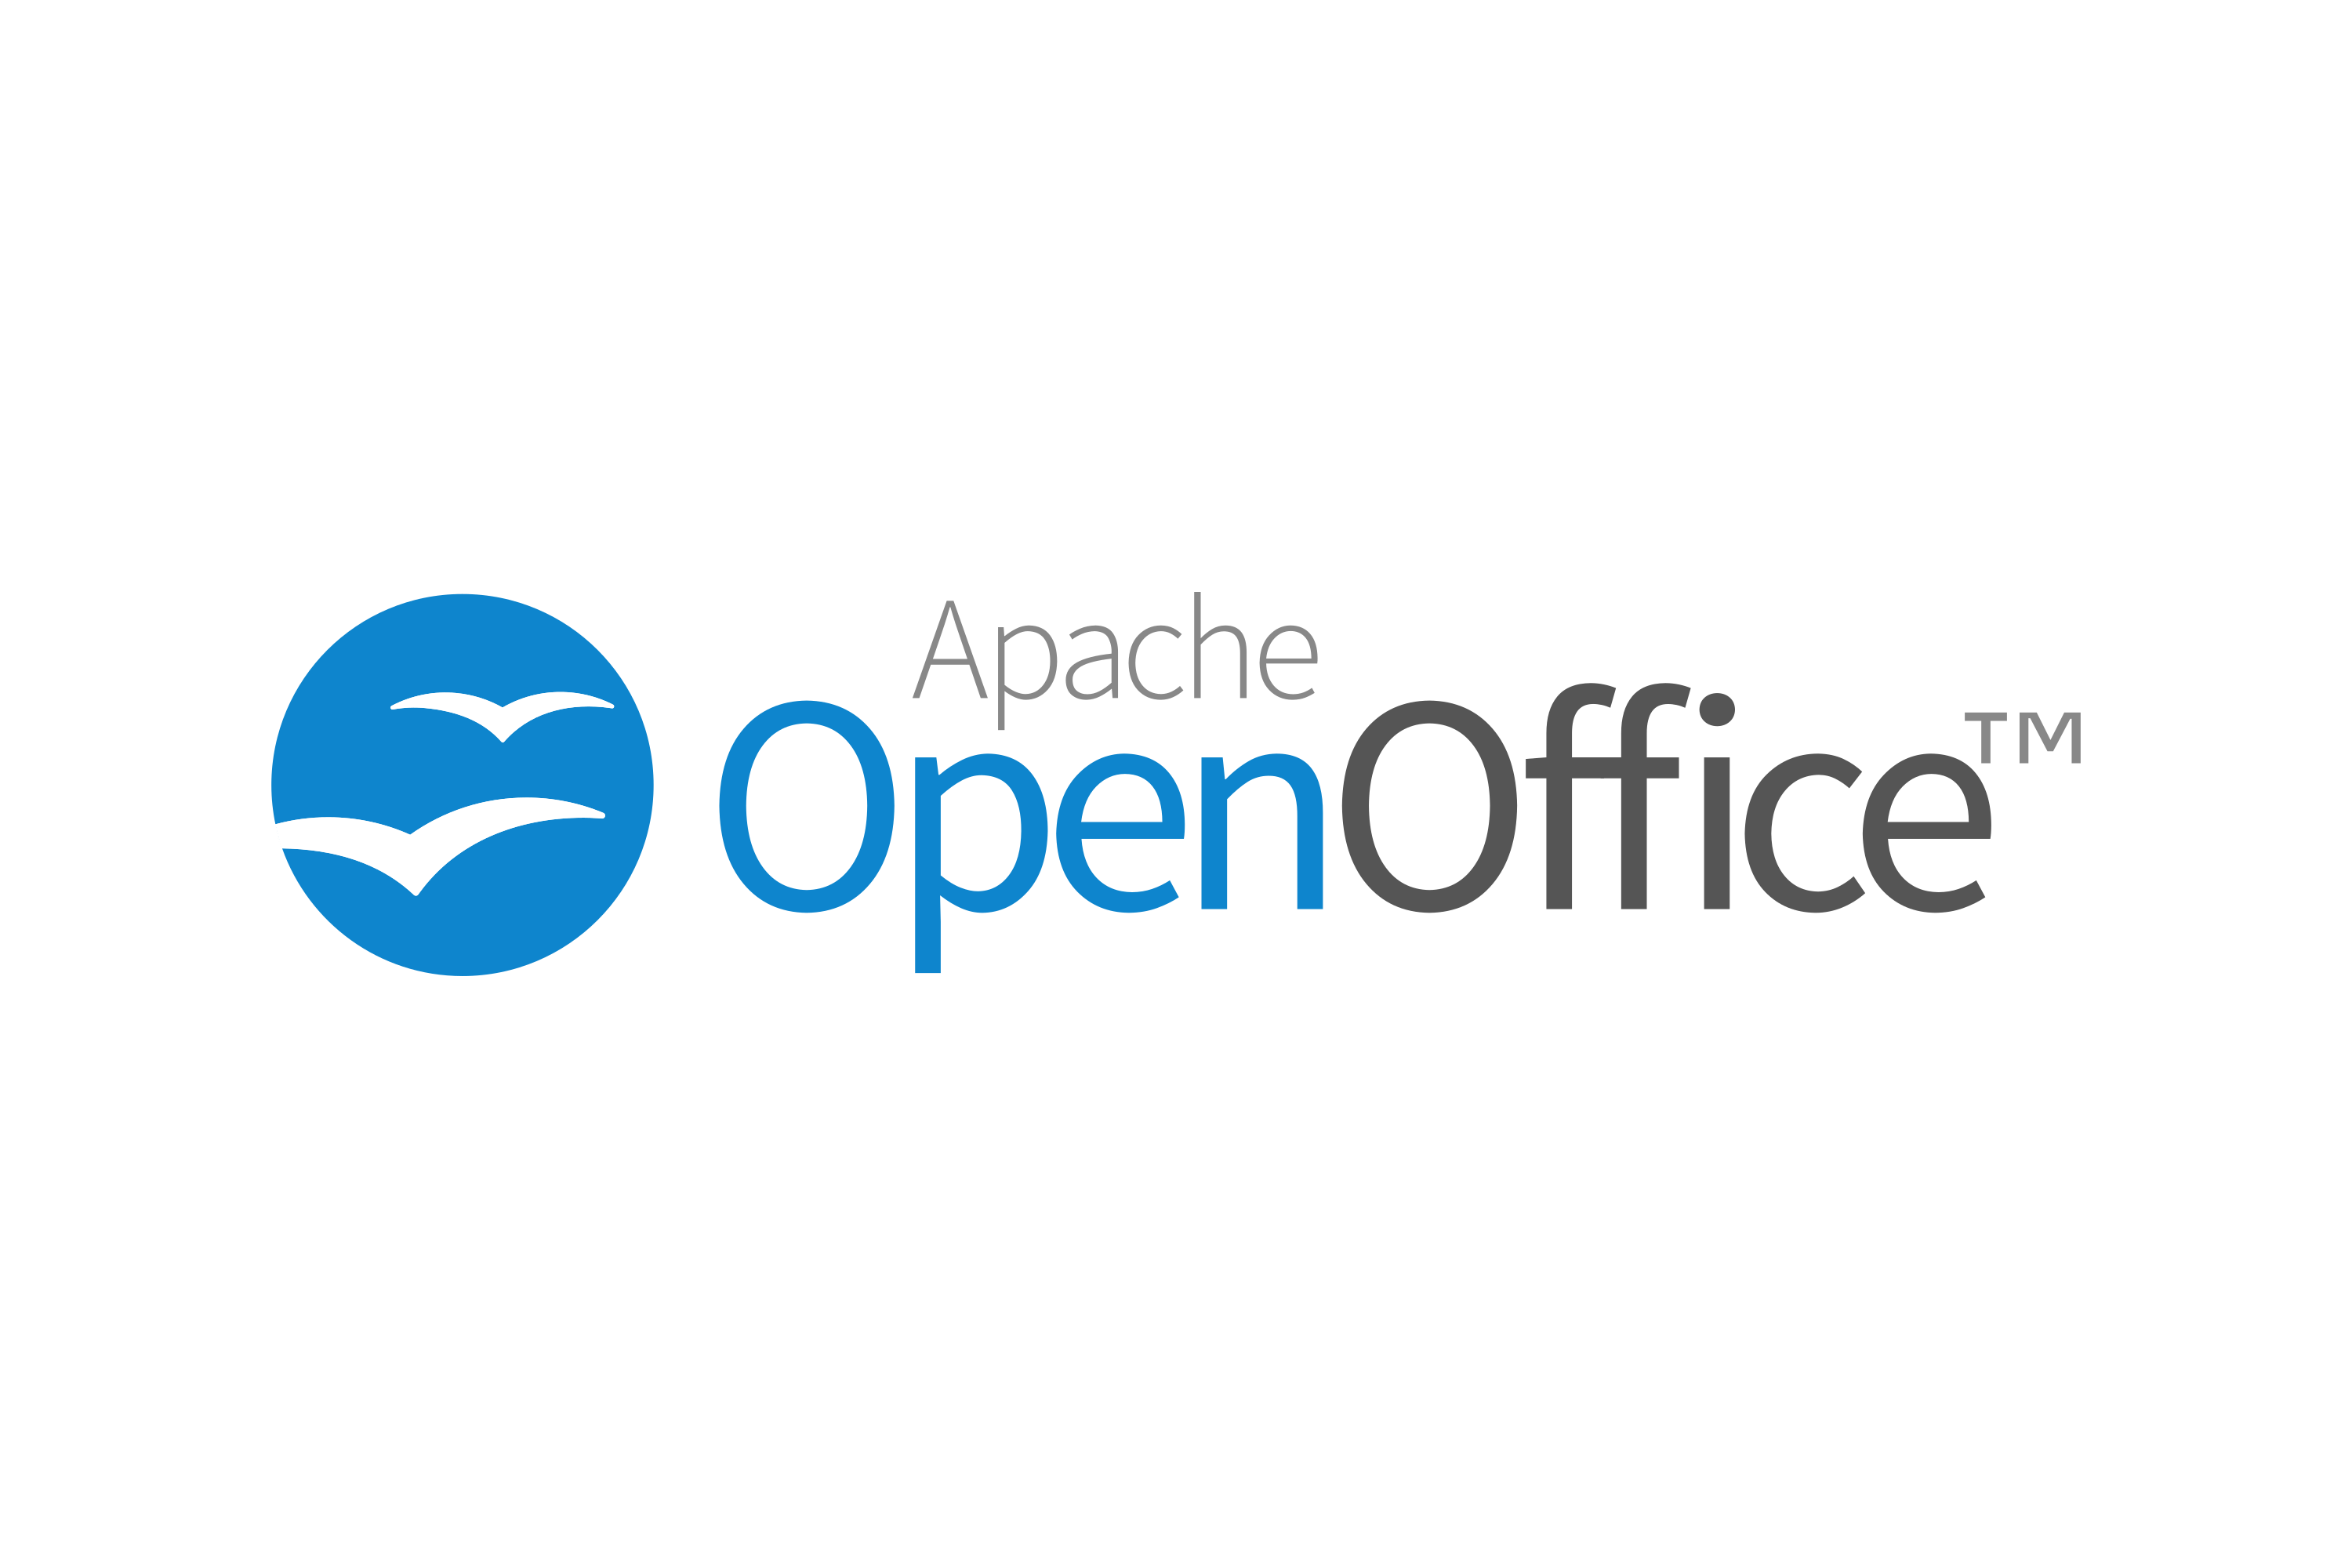 Download Apache OpenOffice (AOO) Logo in SVG Vector or PNG File Format -  Logo.wine